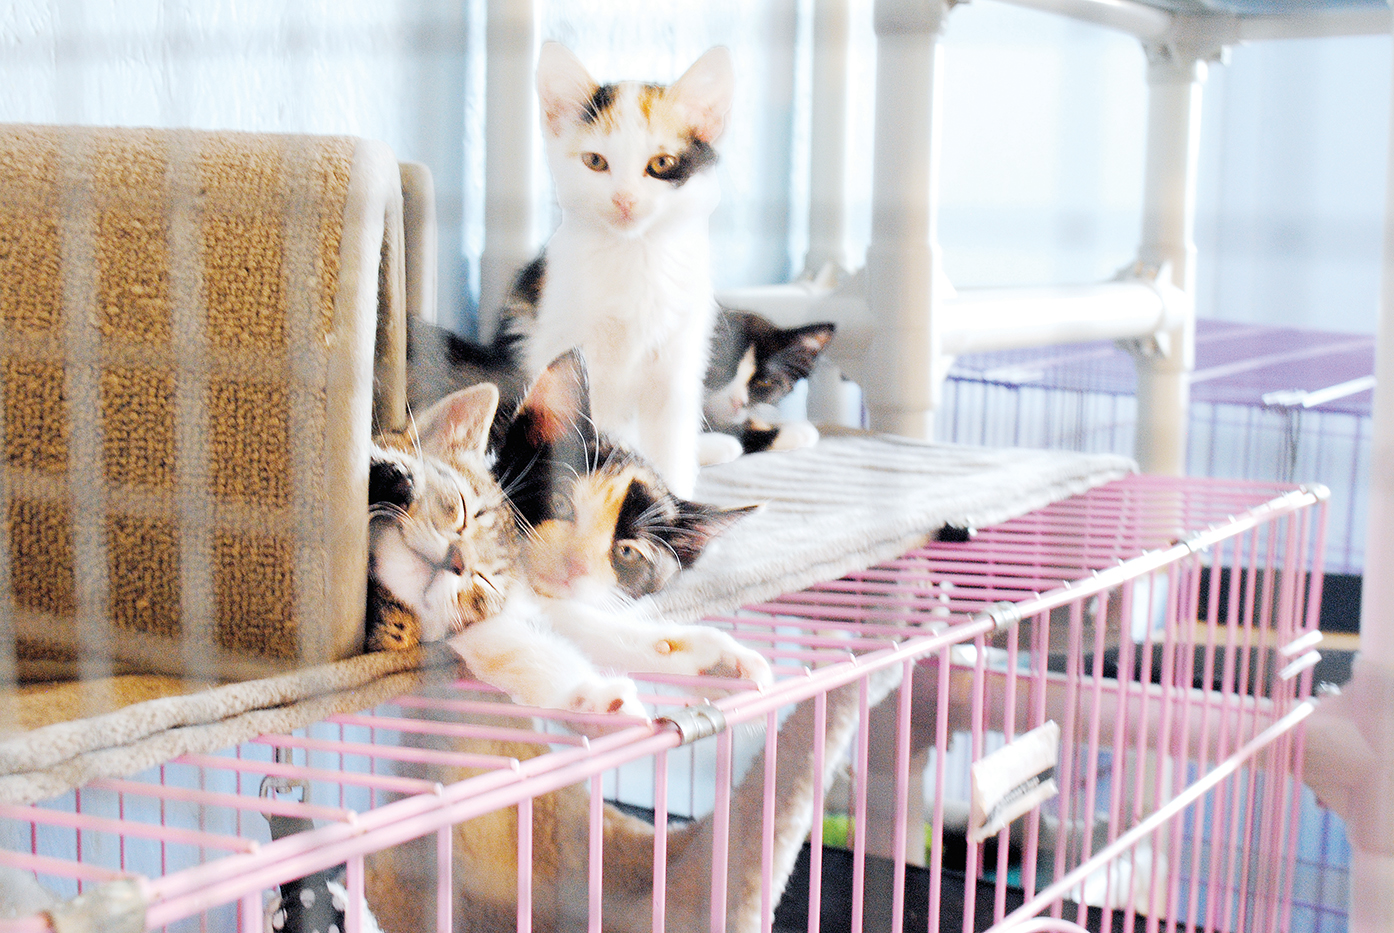 Photos by Aaron Paden/The Brookhaven Animal Rescue League will offer a discounted adoption fee on cats for June, in an effort to find each one a forever home.